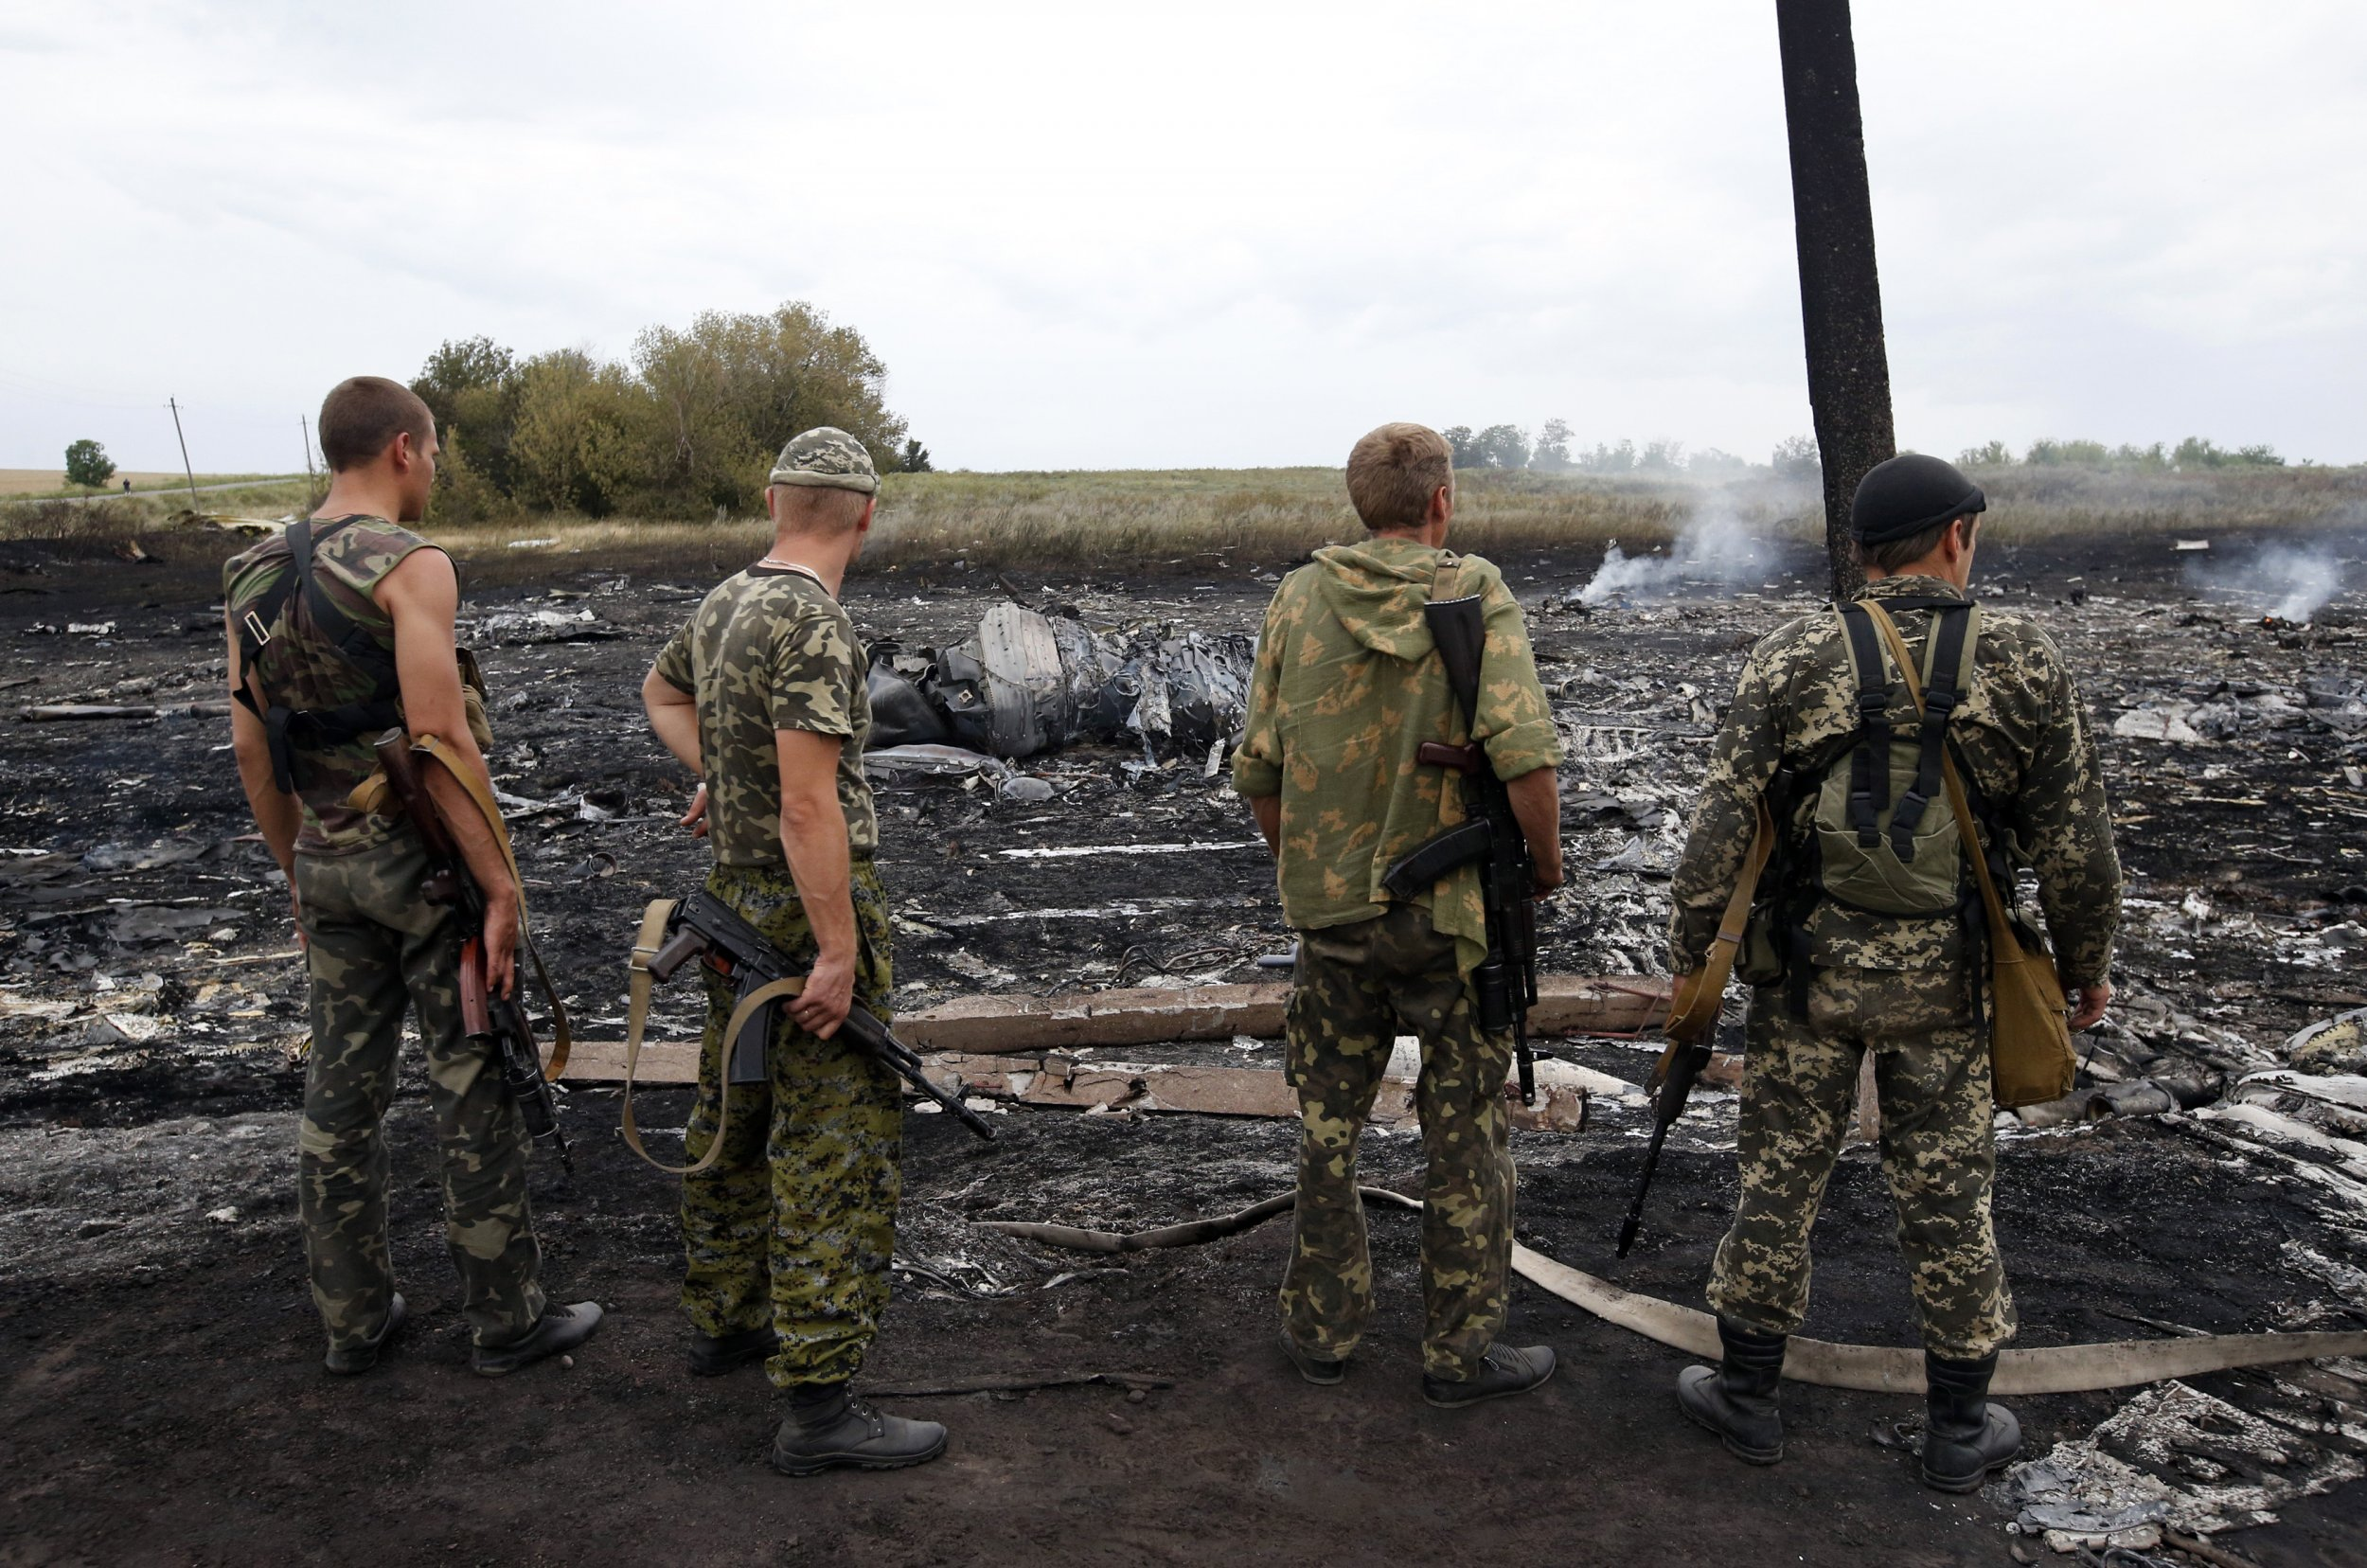 On The Ground With The Pro Russian Separatists Suspected Of Images, Photos, Reviews